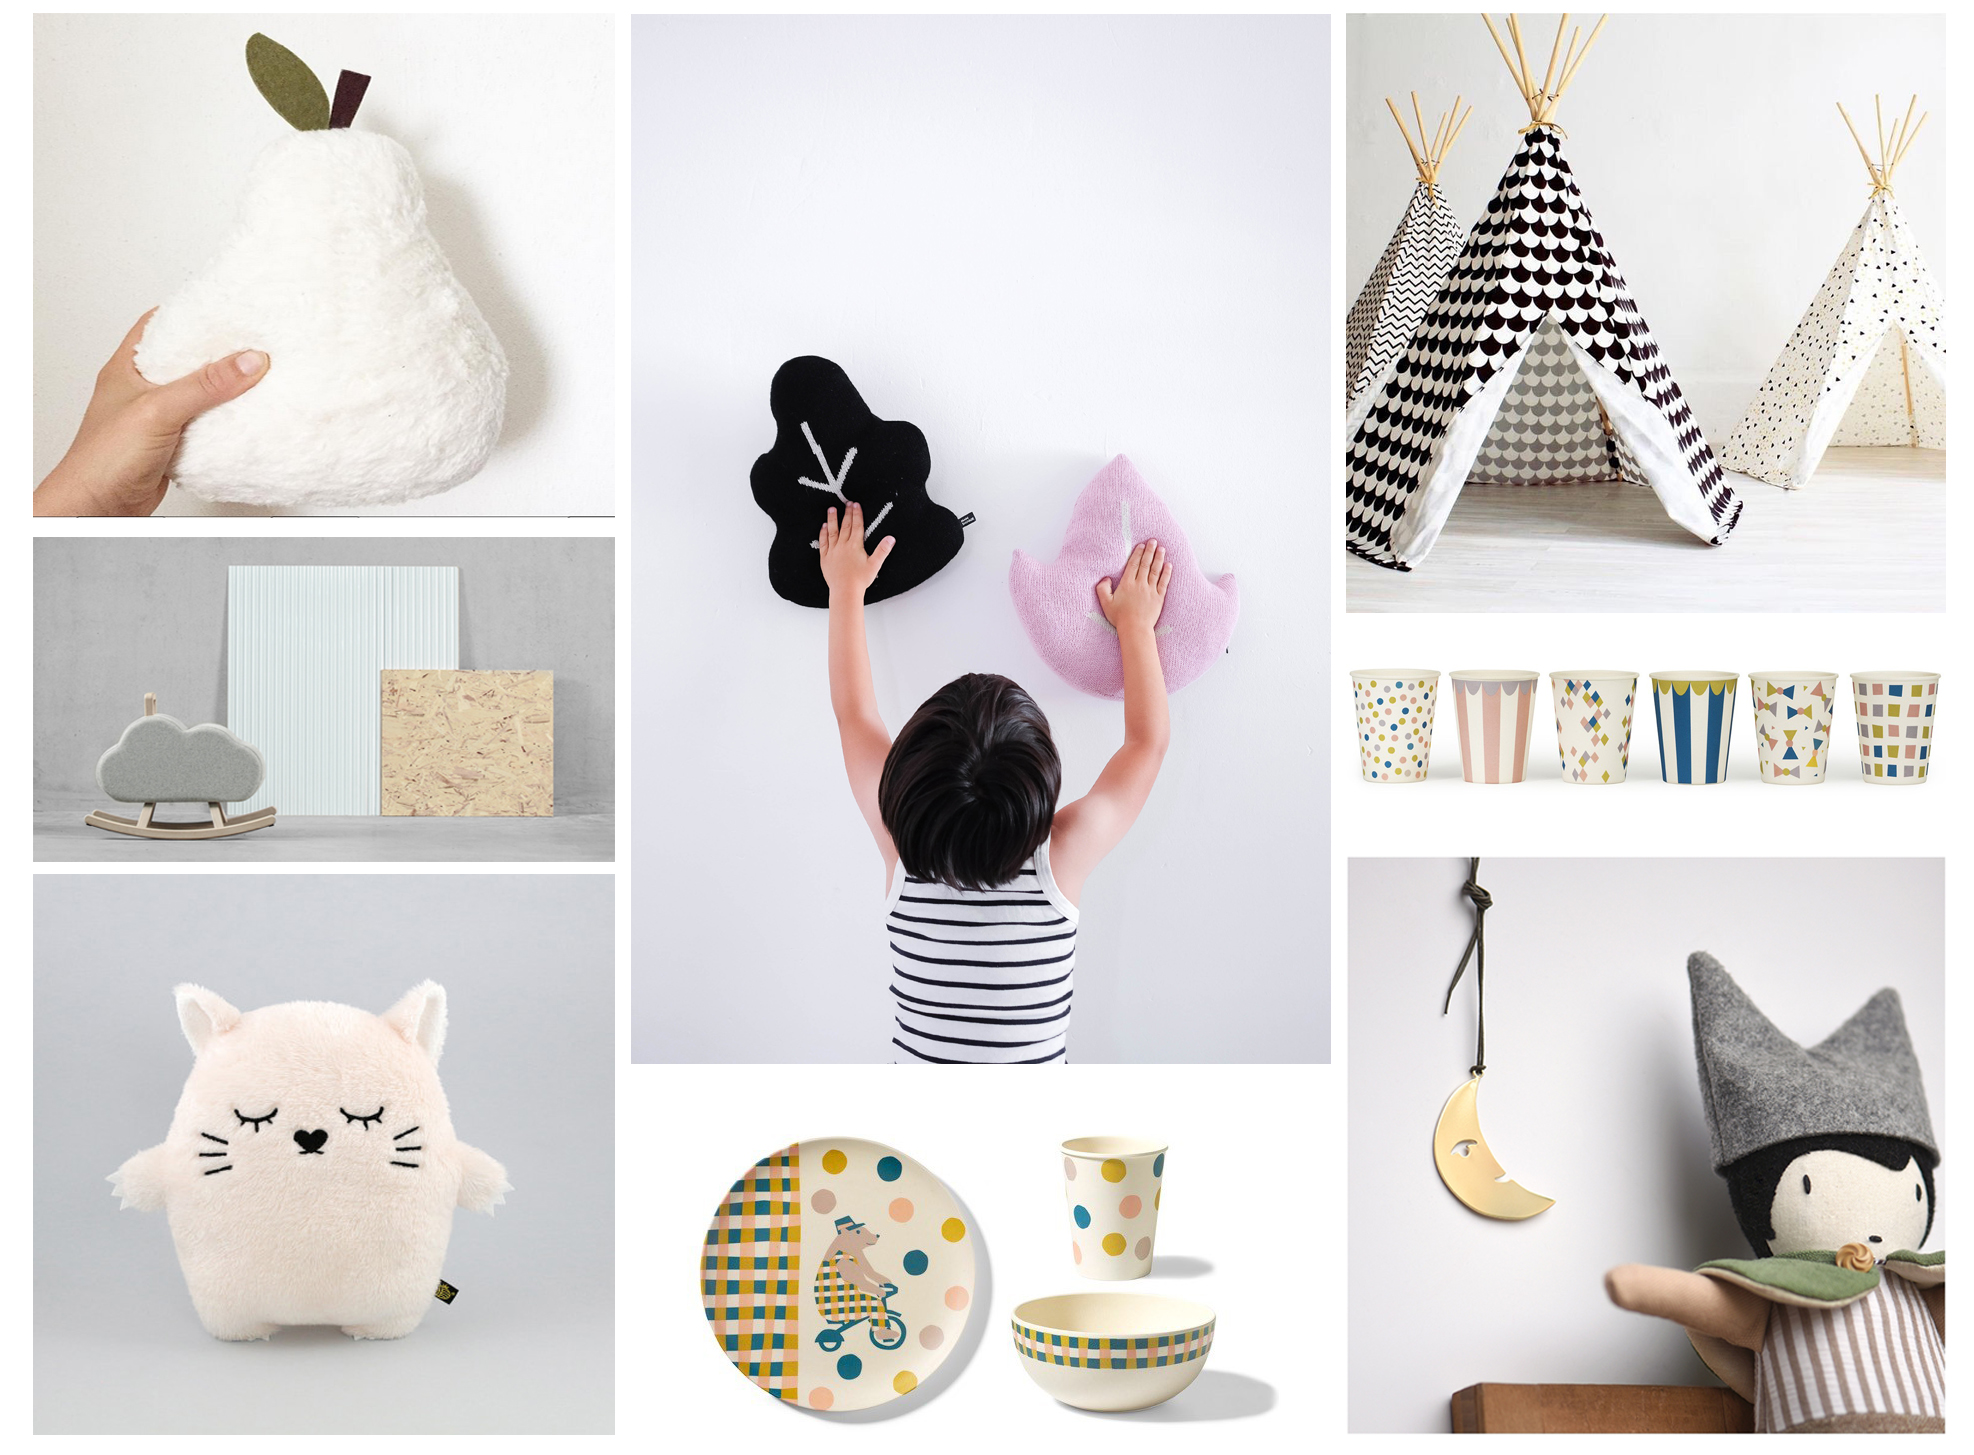 selection-holidays16-kids-my-trend-book